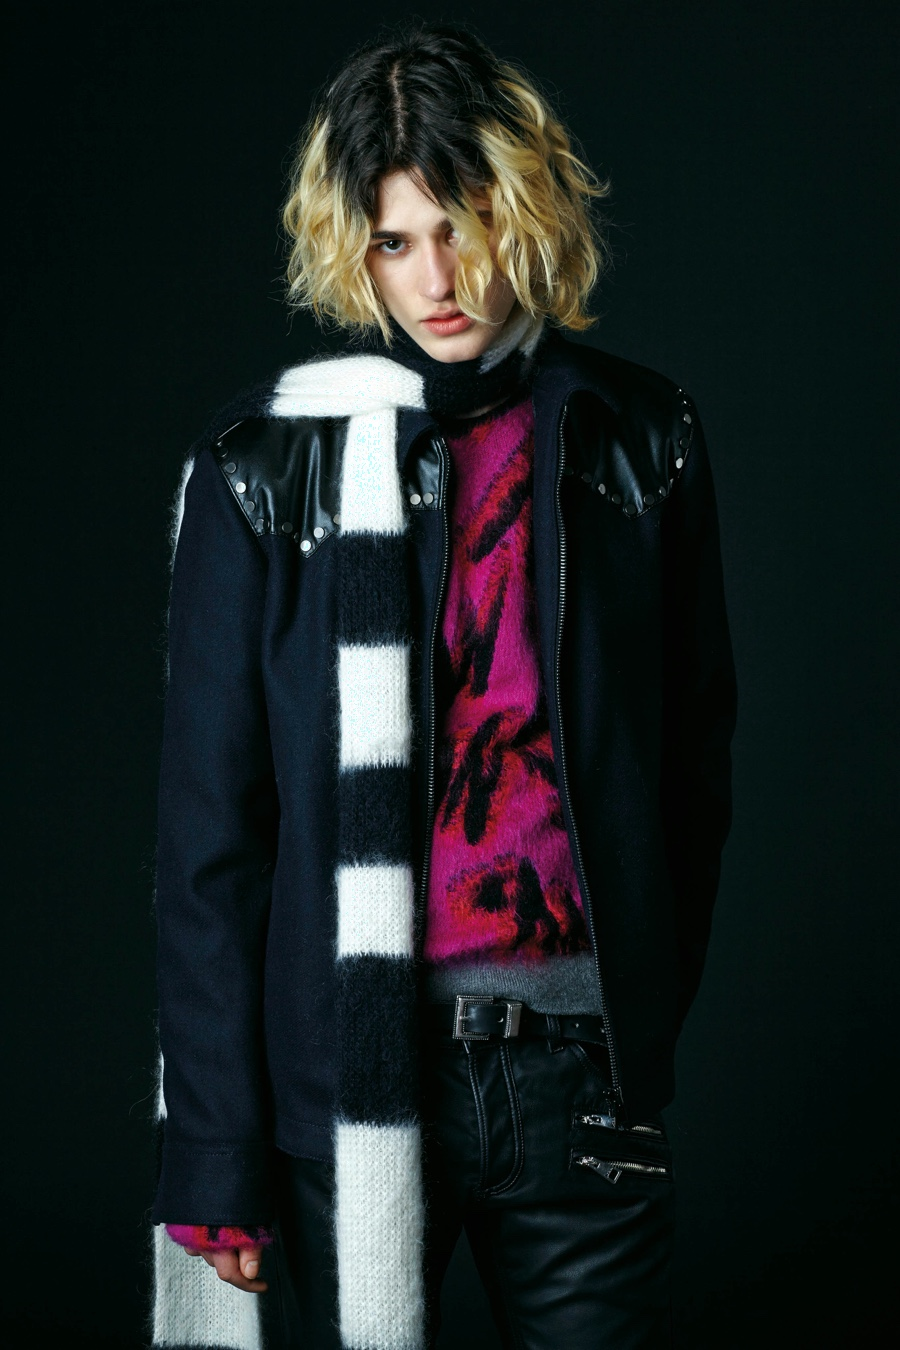 Just Cavalli Embraces Vintage Grunge Style for Pre-Fall Collection